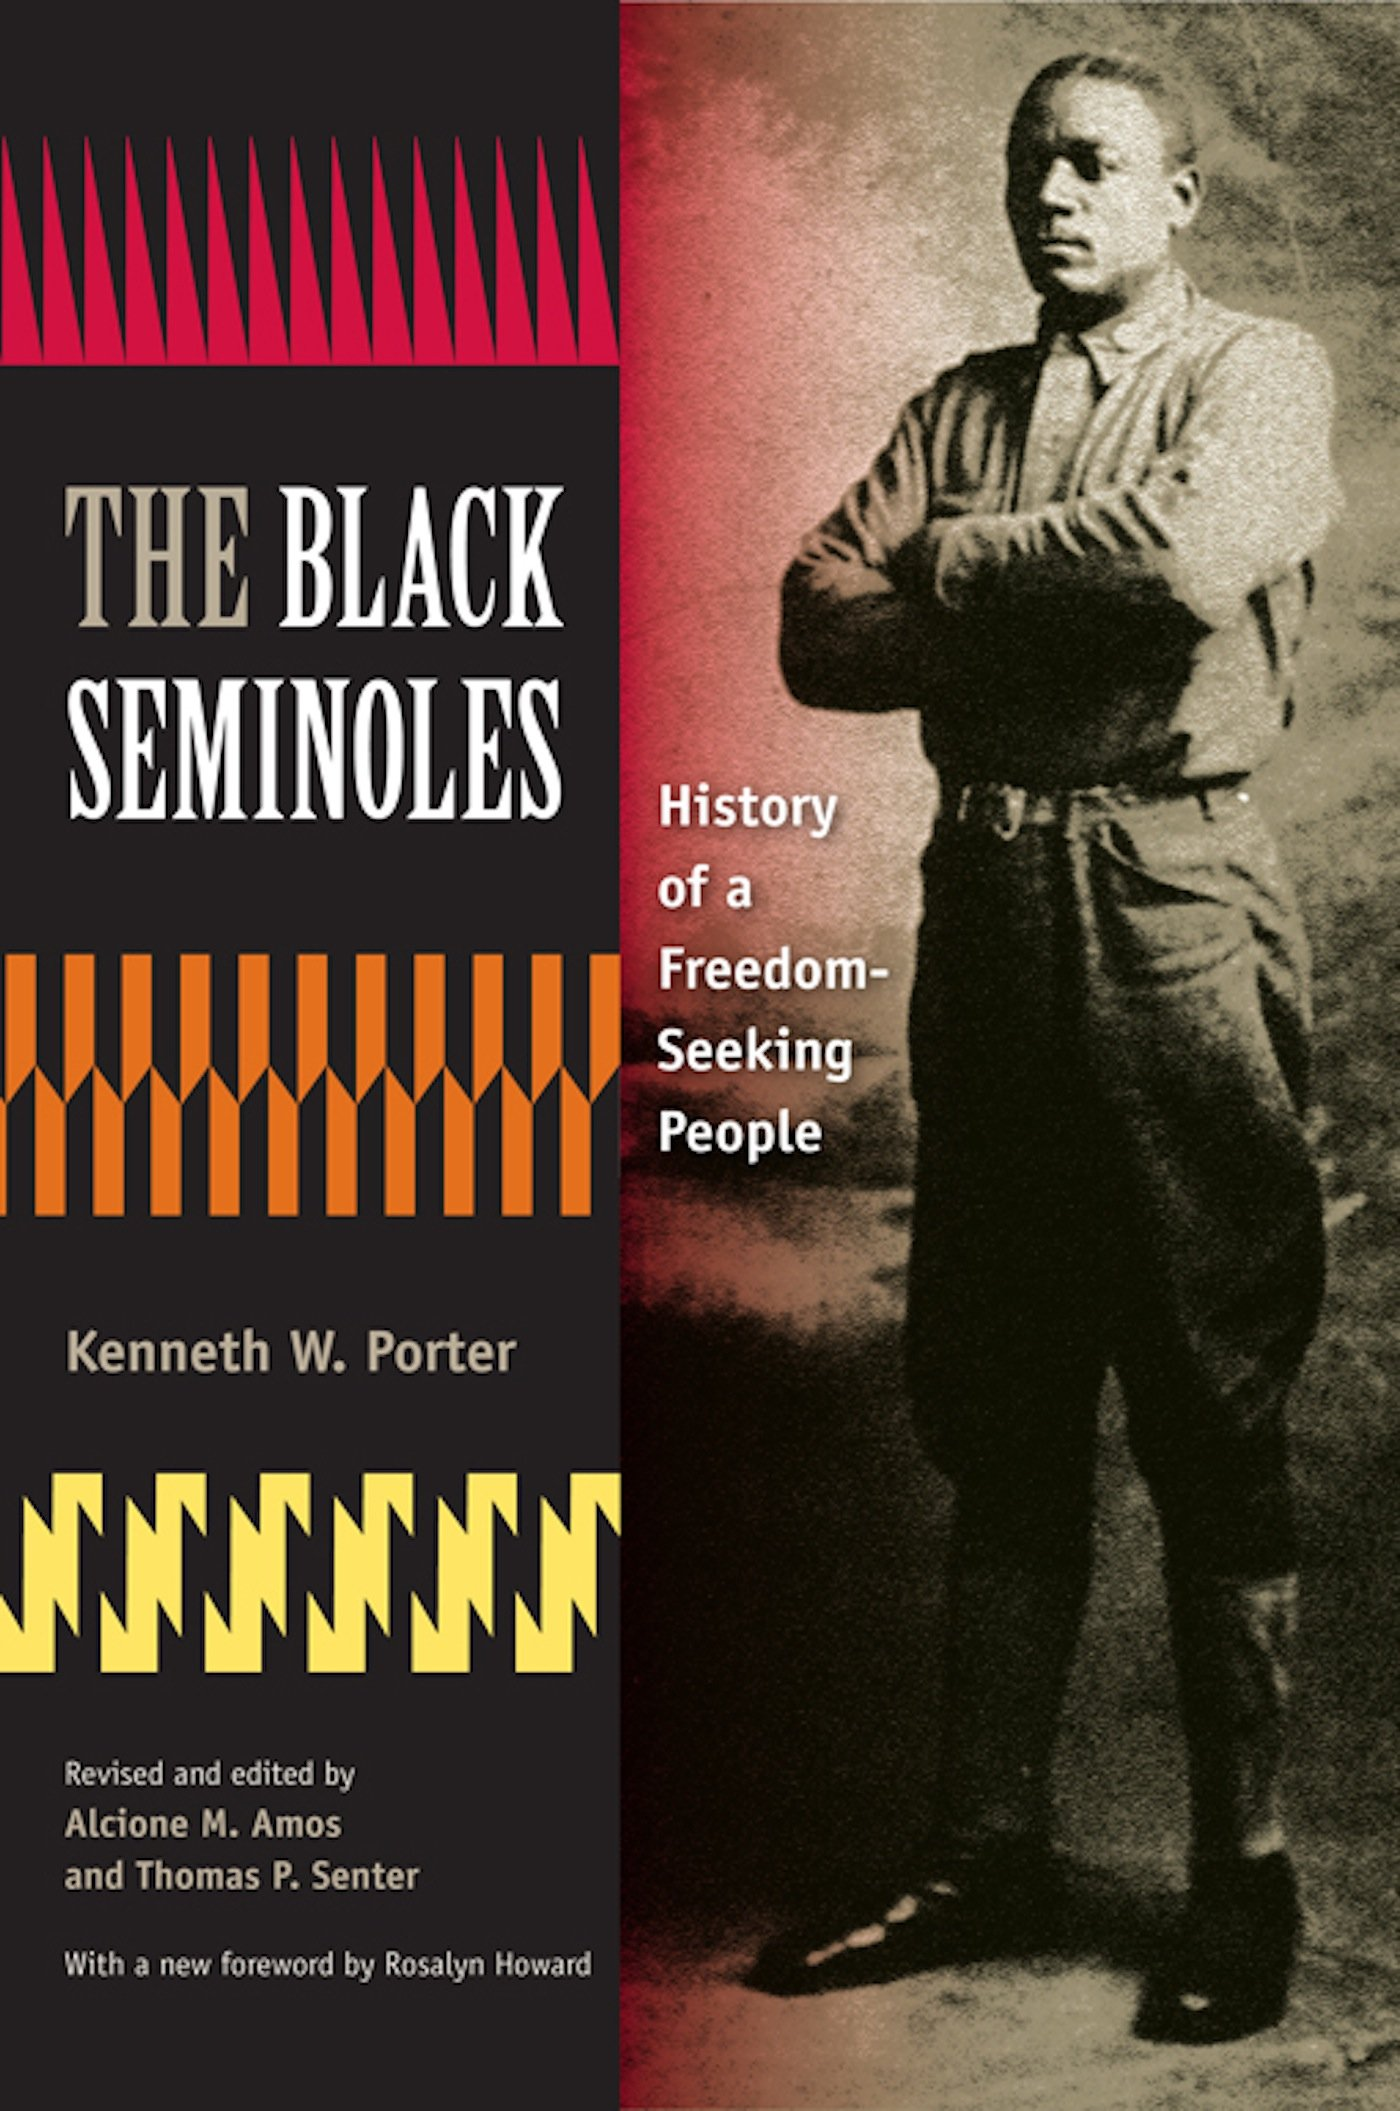 who were the black seminoles